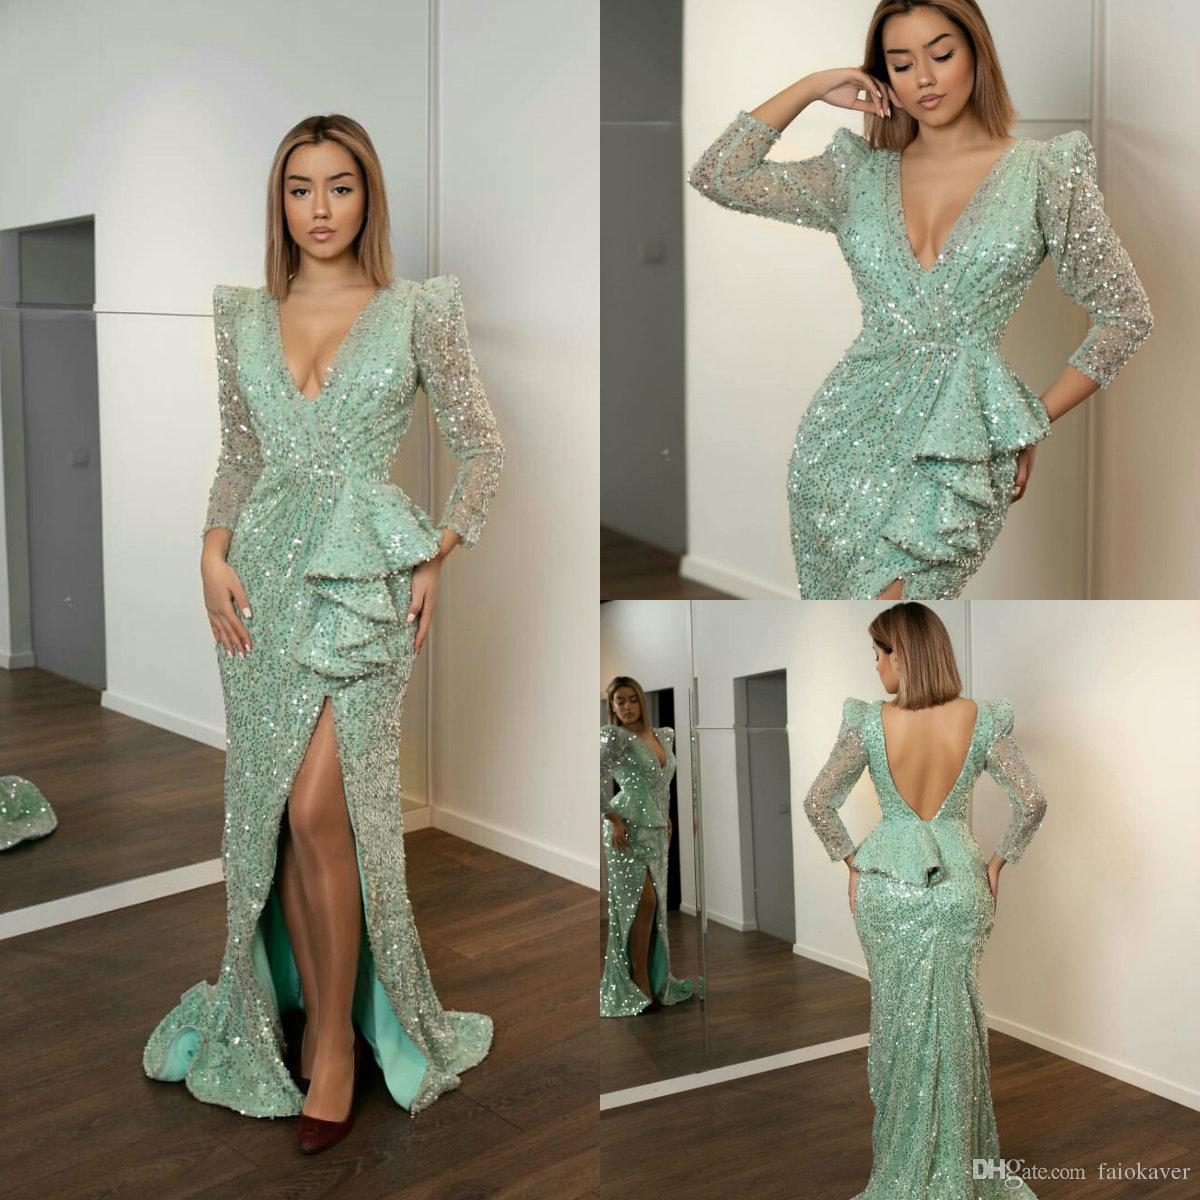 57fa12a56753 2019 Mint Green Prom Dresses V Neck Lace Sequined Side Split Sweep Train  Sexy Evening Dress Plus Size Long Sleeve Mermaid Party Gowns Prom Dress  Designers ...